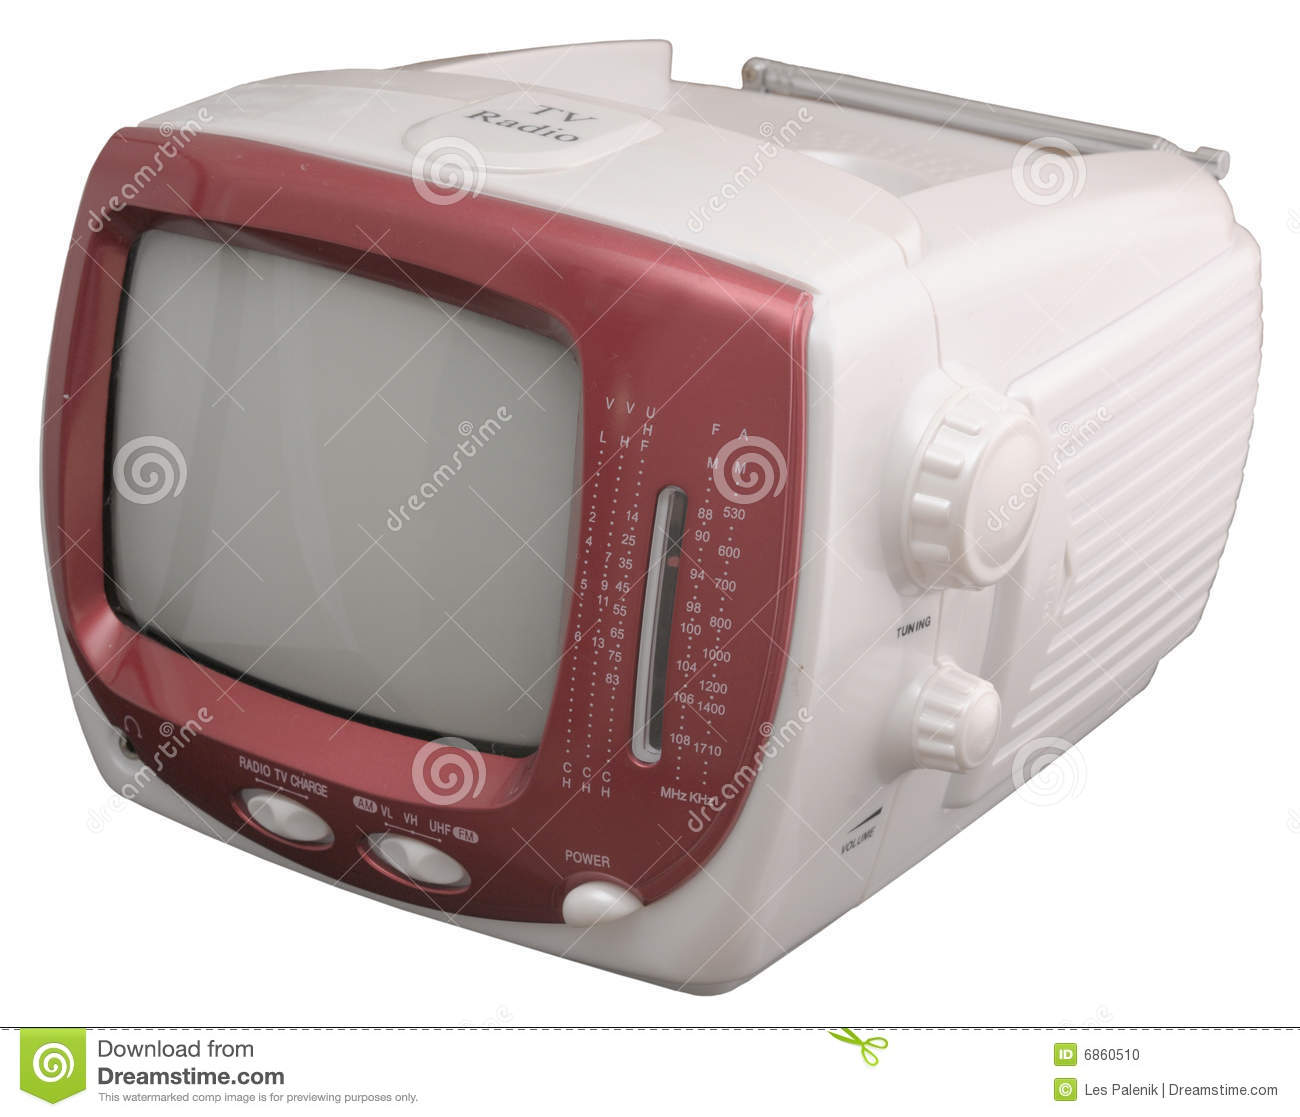 111757348956 likewise Toys In The 1960s as well Prepare For A Brush Fire moreover Safety Tips To Keep In Mind During Winter Power Outages together with Stock Photo Portable Mini Tv Radio Image6860510. on battery operated radio and television